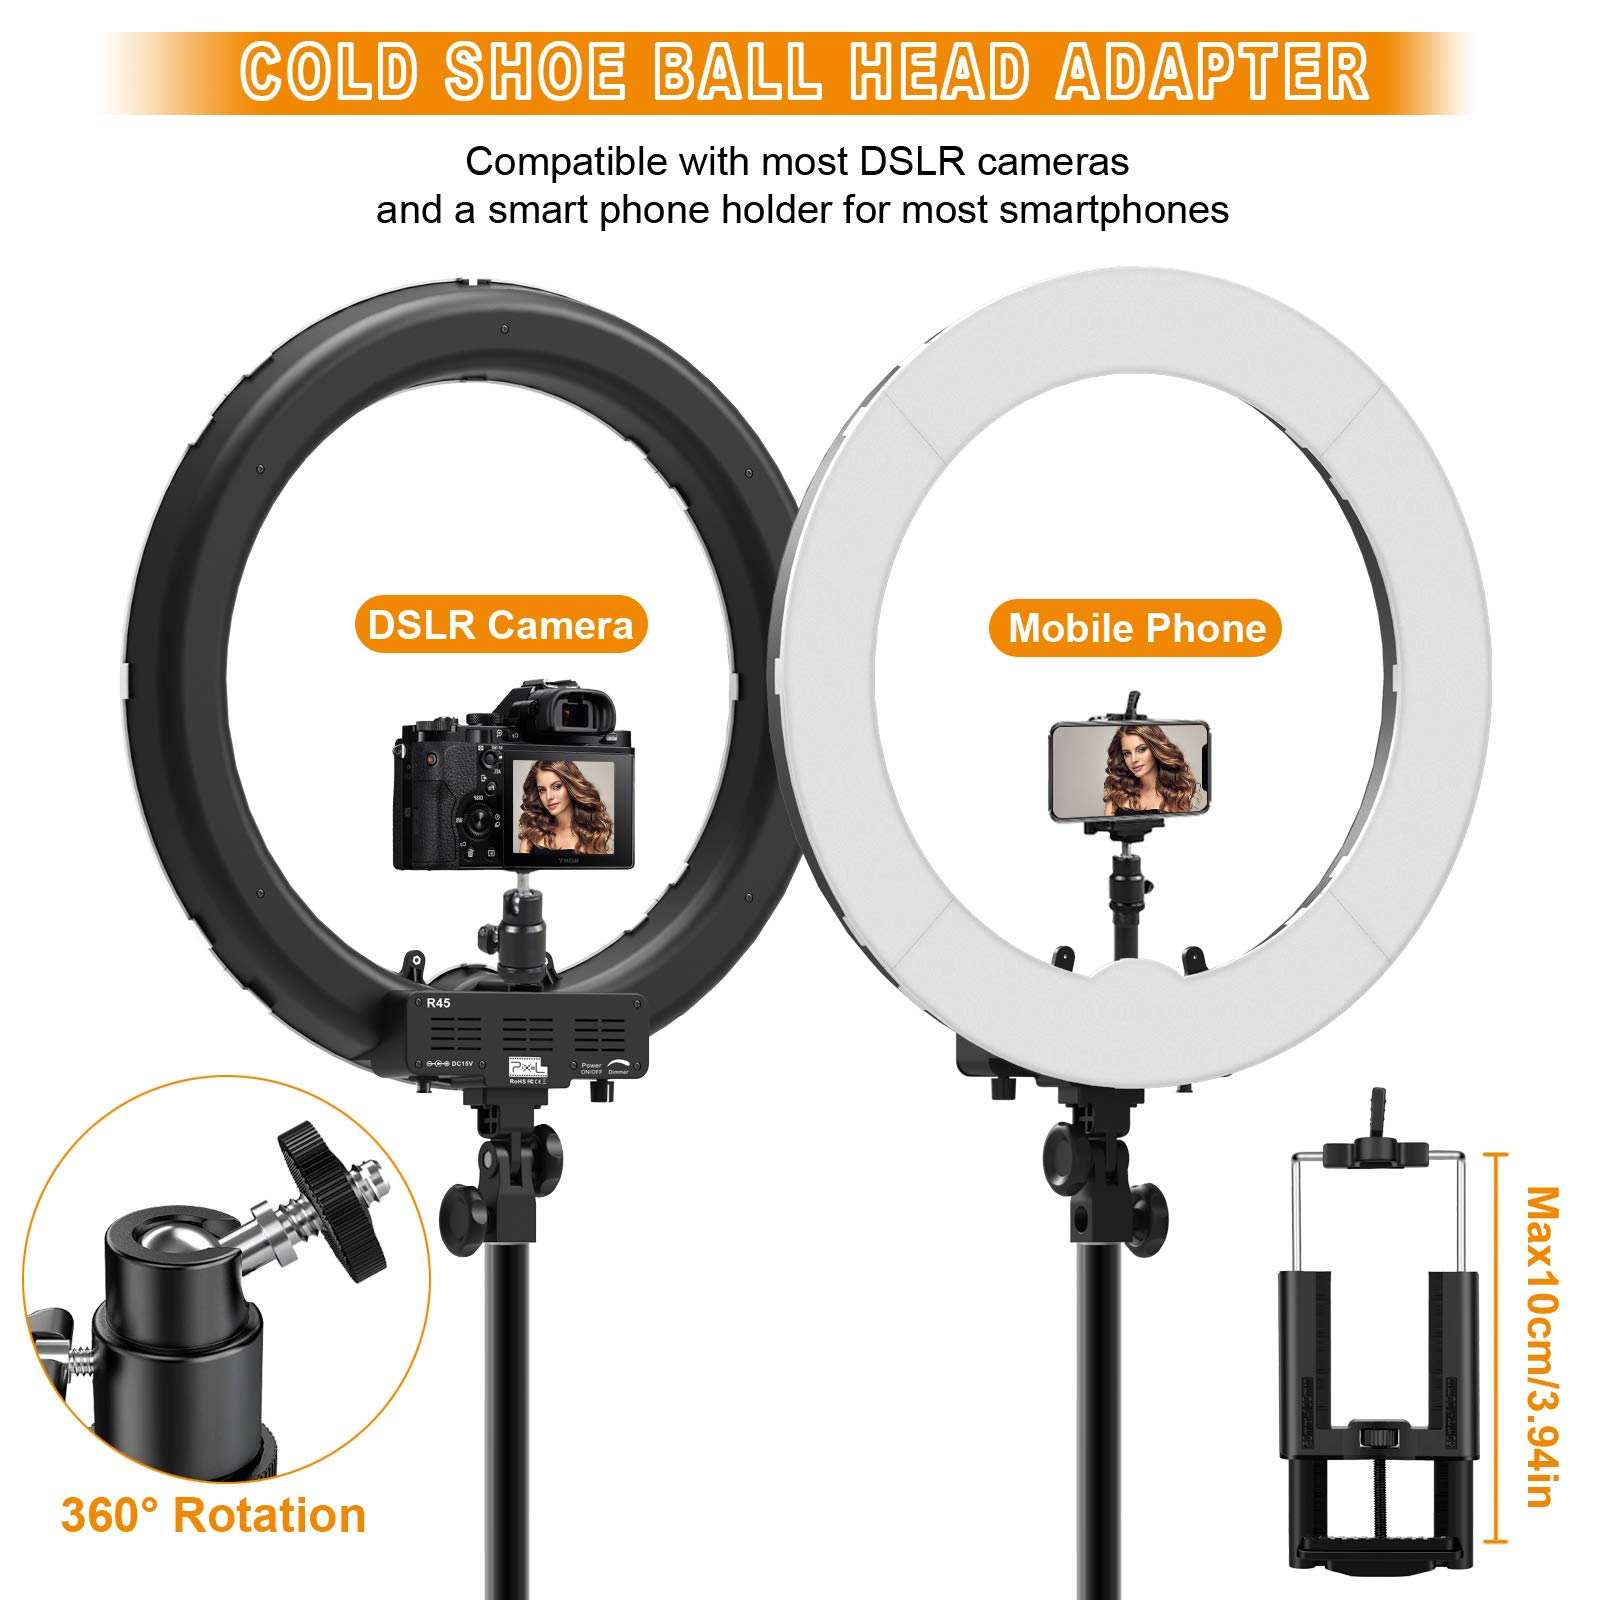 Ring Light Kit:18'' 48cm Outer 55W 5500K Dimmable LED Ring Light, Light Stand, Carrying Bag for Camera,Smartphone,YouTube,Self-Portrait Shooting by IVISII (Image #2)